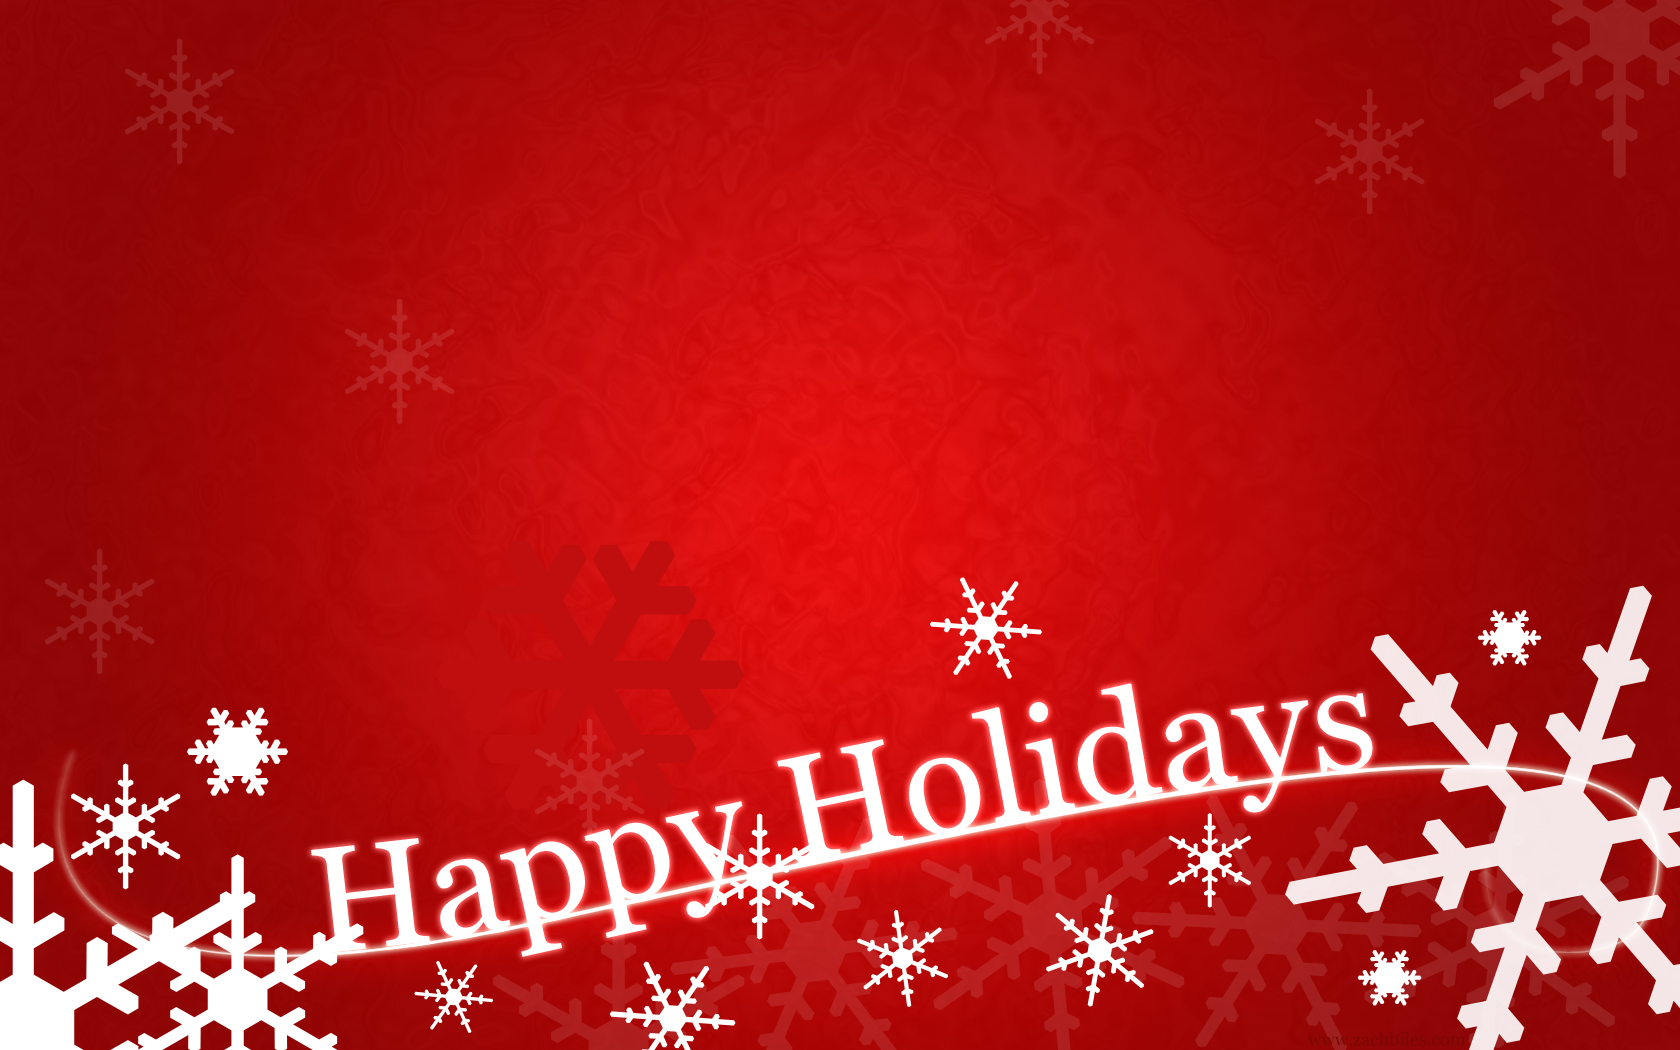 Theoxygenious Holidays Wallpaper Twitter Backgrounds